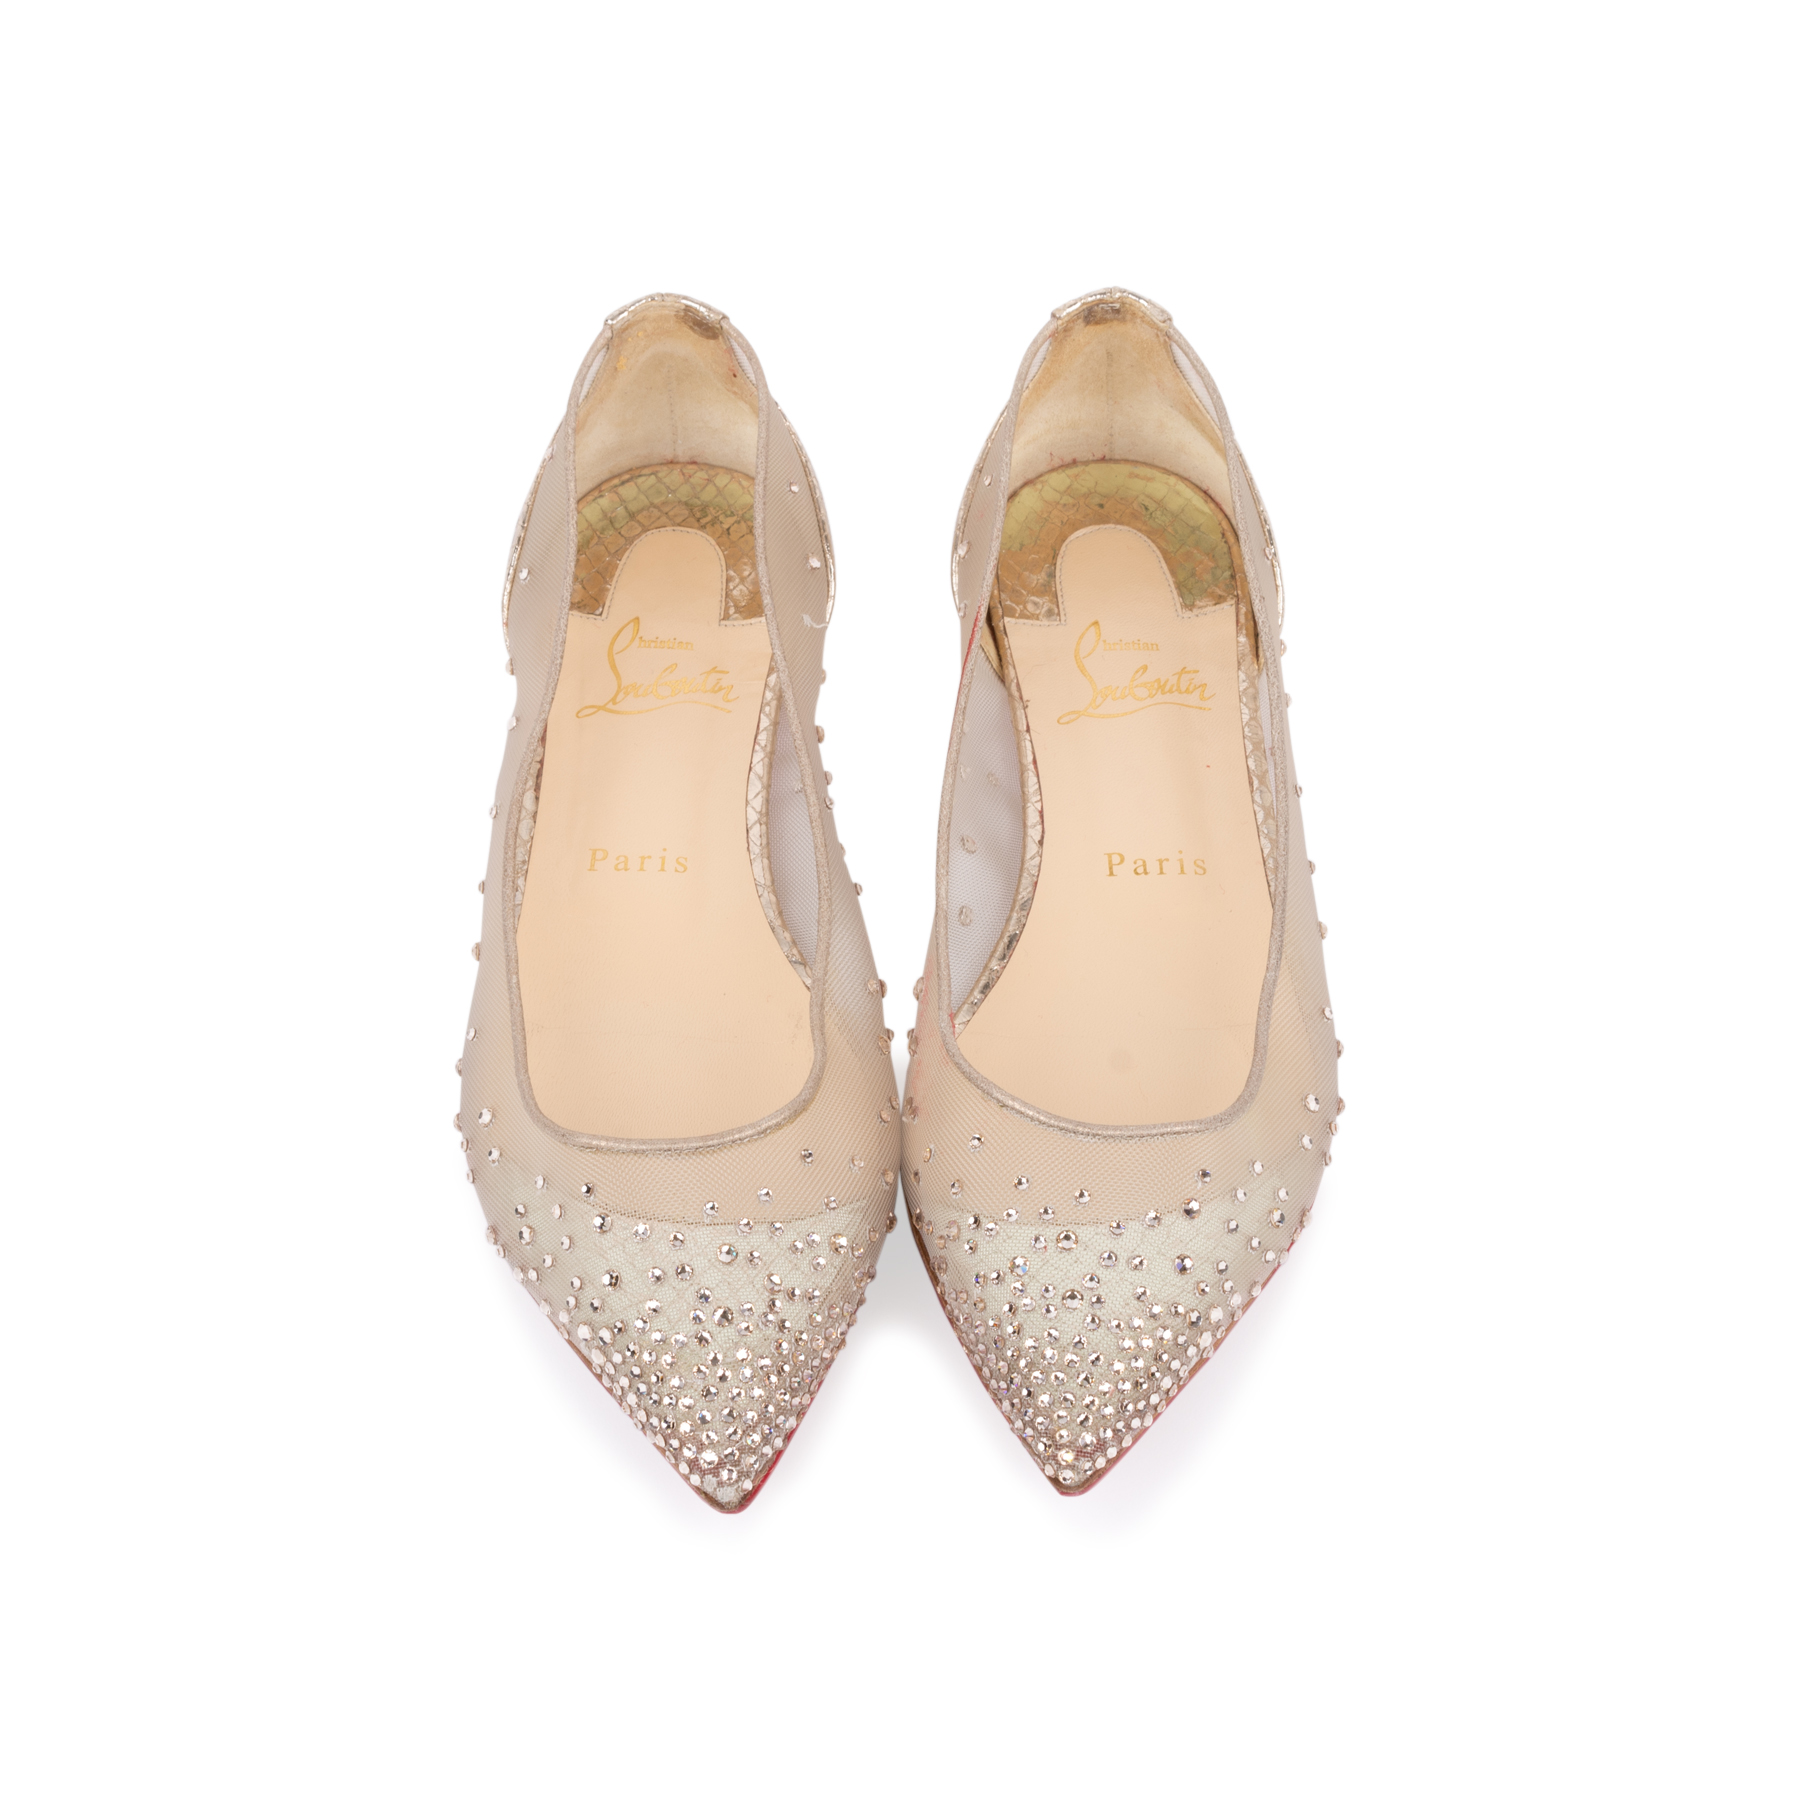 016bd664350 Follies Strass Mesh and Leather Flats